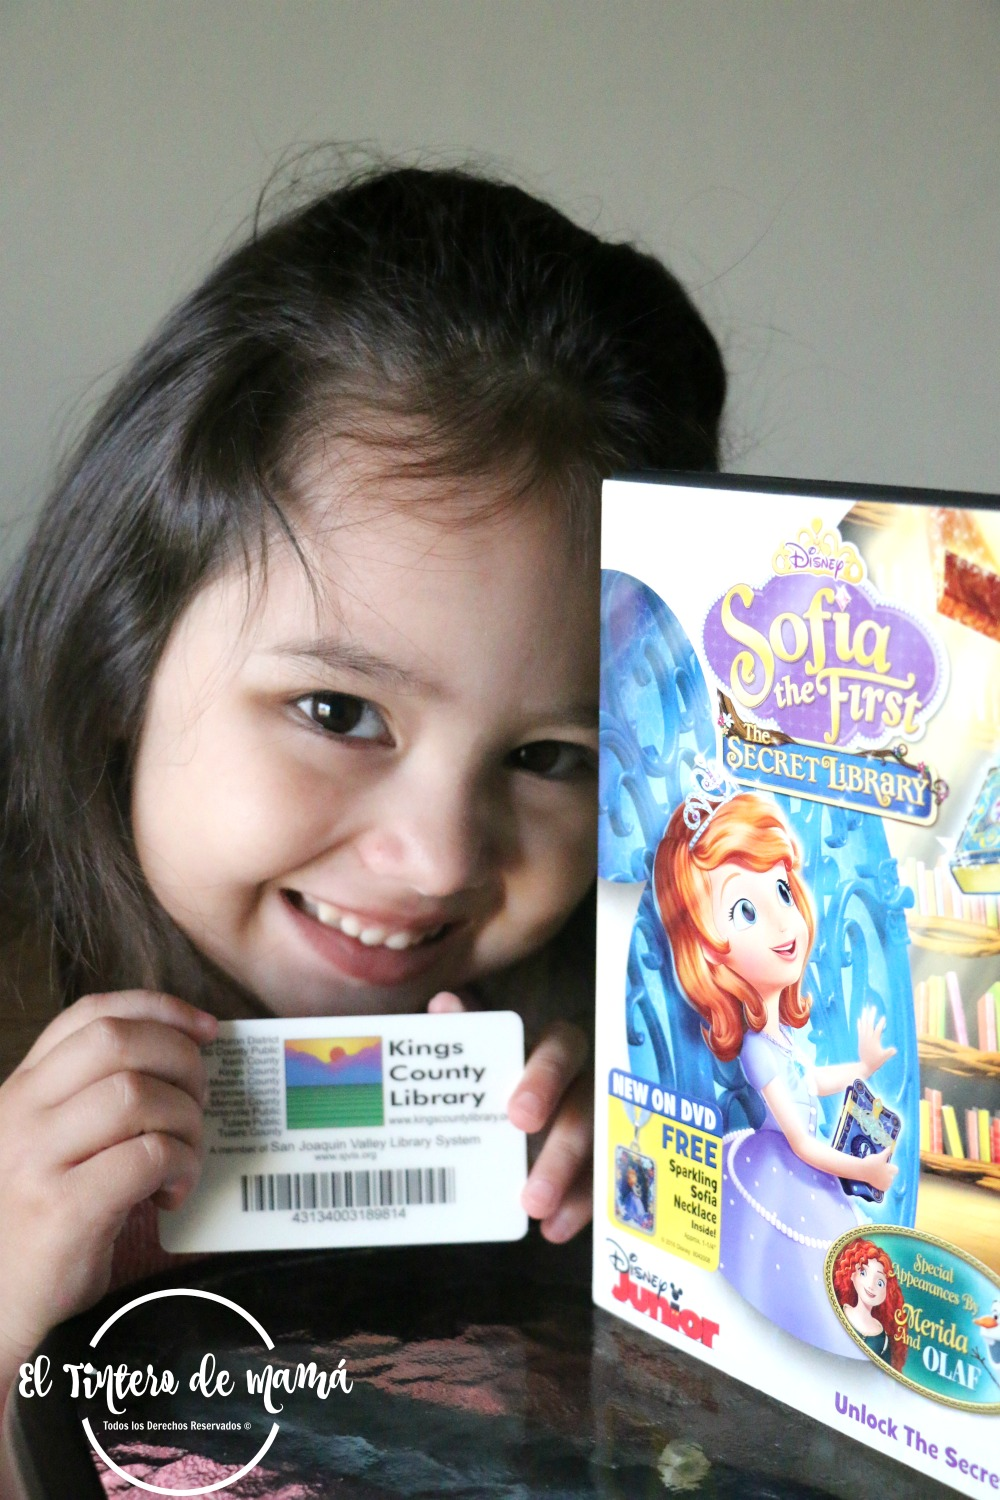 Sofia_The_First_The_ Secret_Library